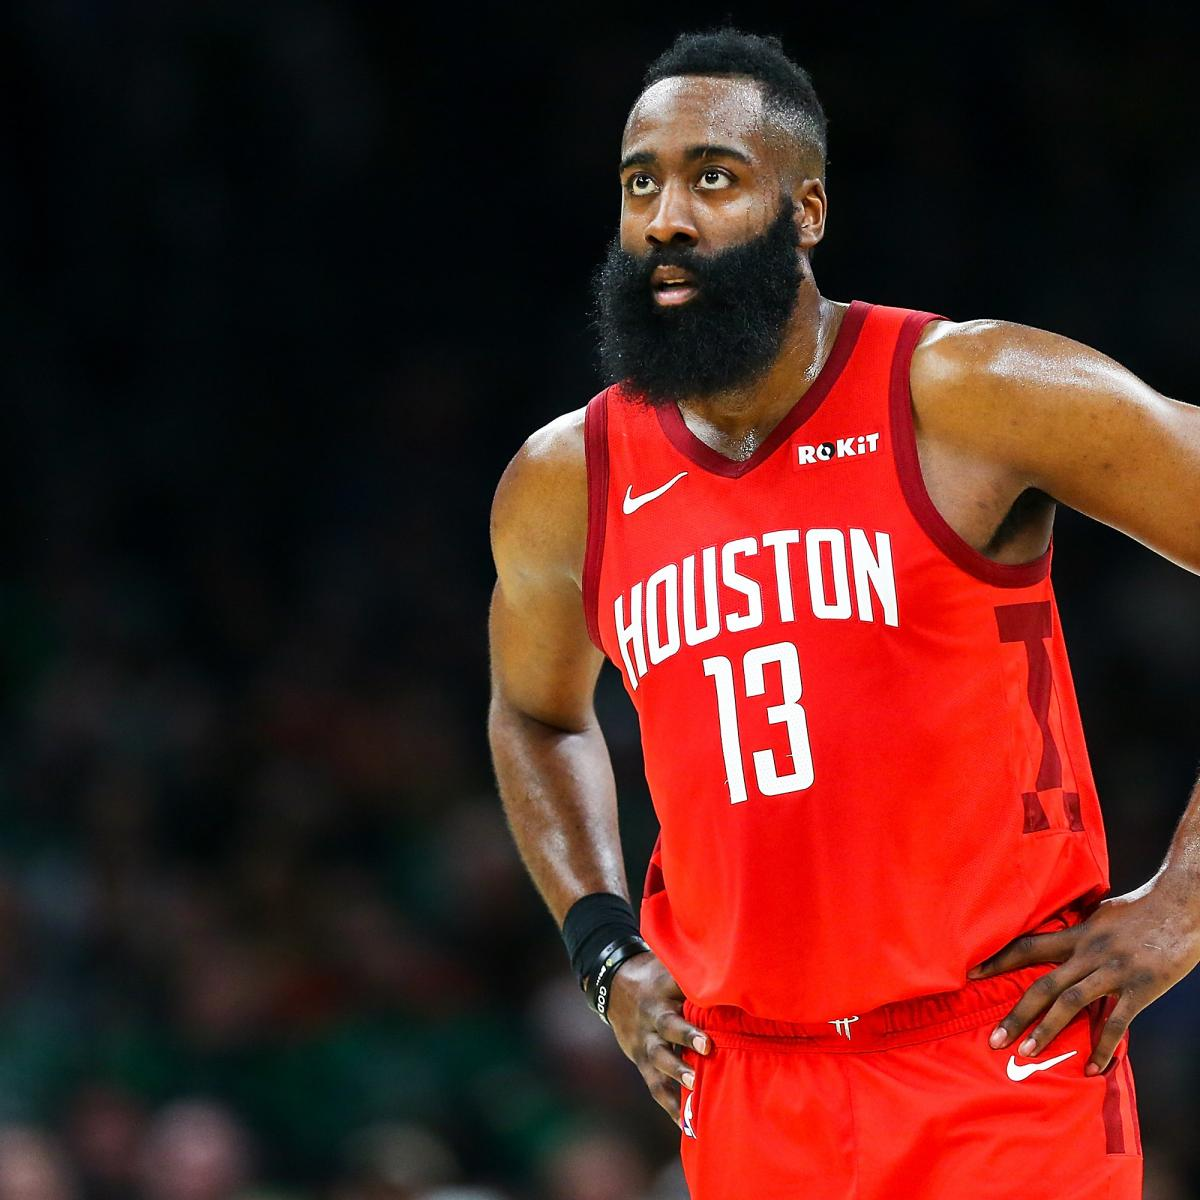 James Harden Records 2019: James Harden Says Rockets Are Finding Rhythm At 'Perfect